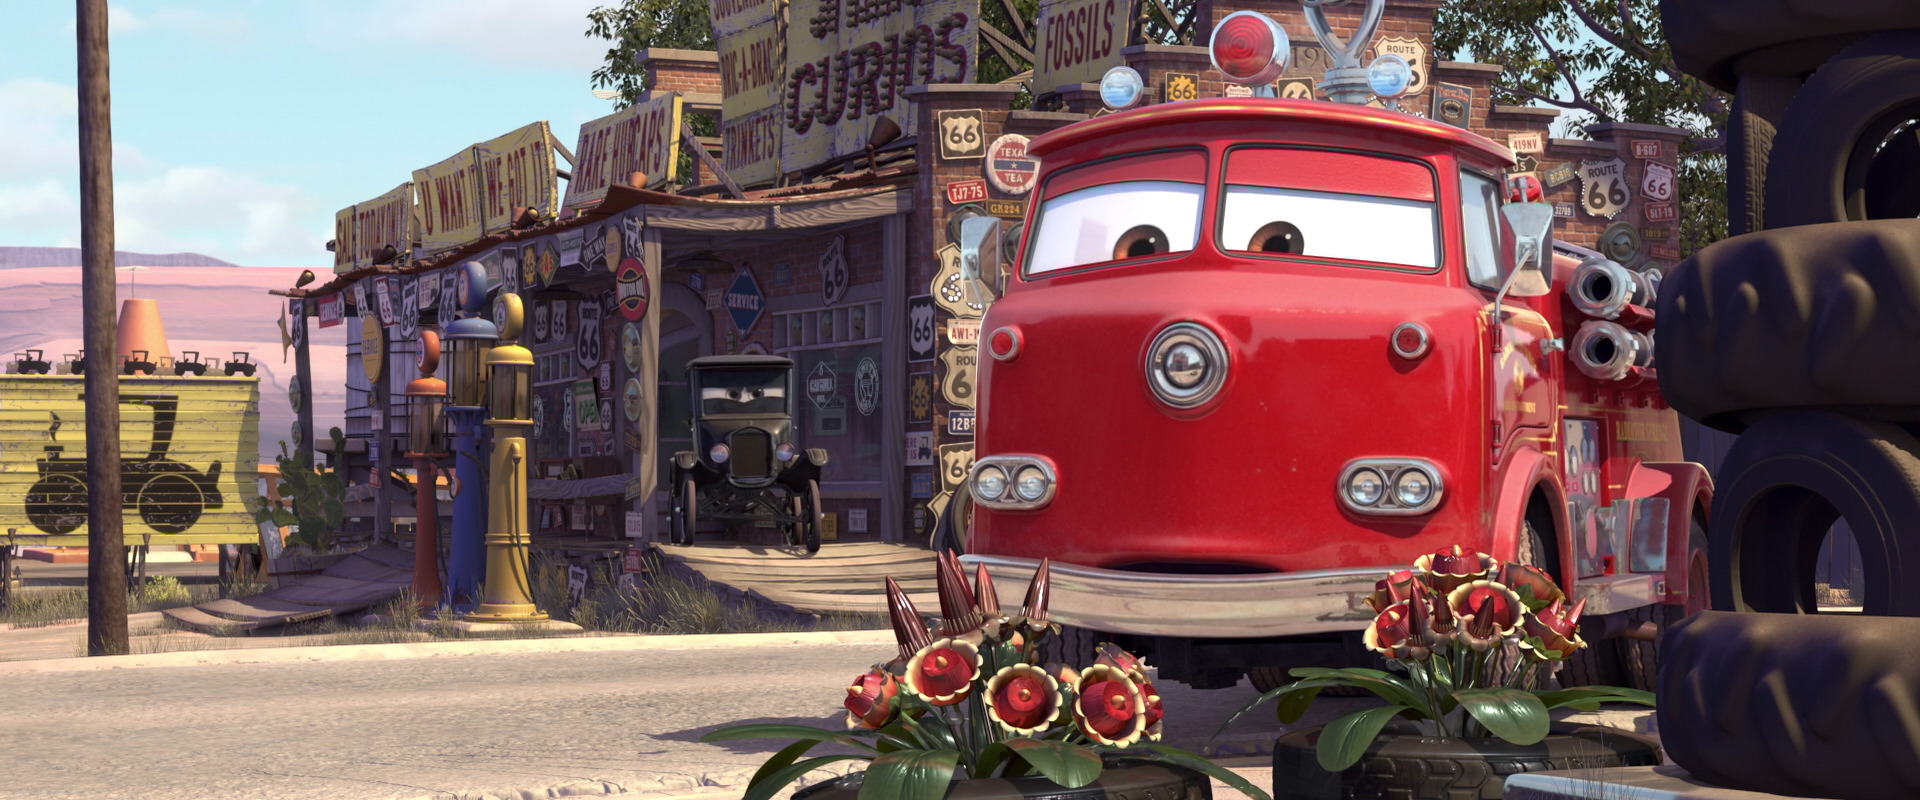 red personnage character pixar disney cars